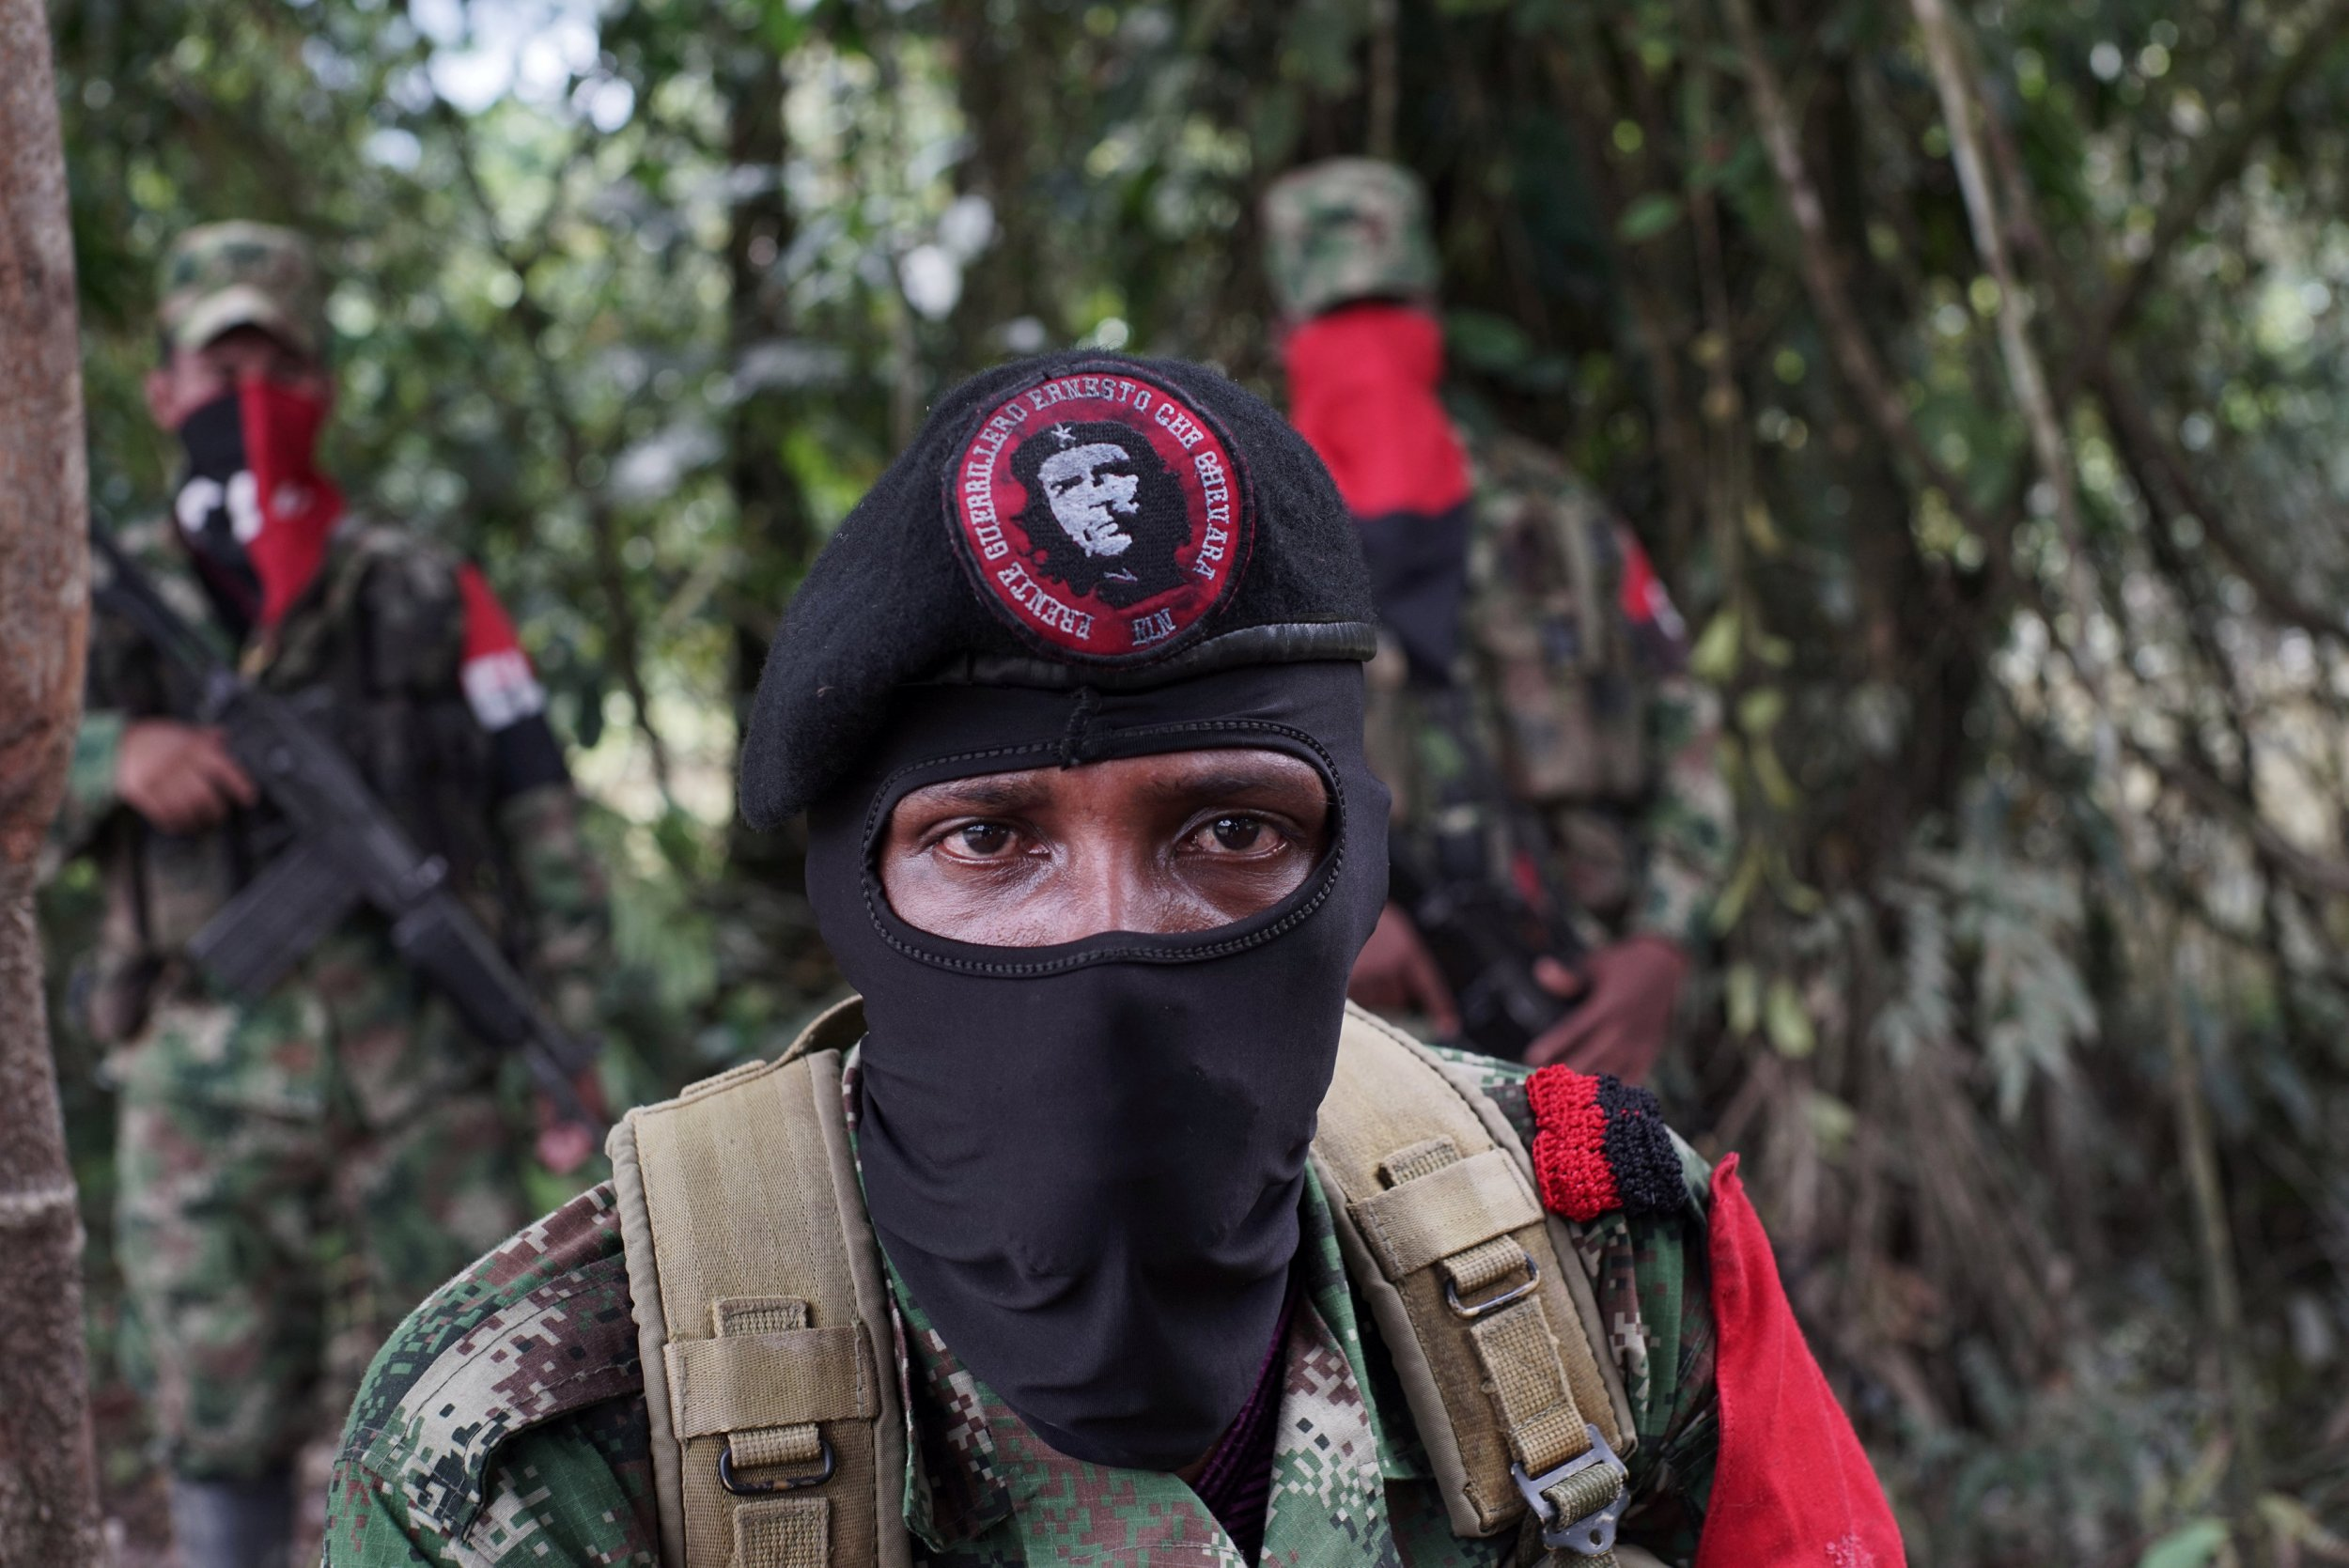 National Liberation Army in Colombia